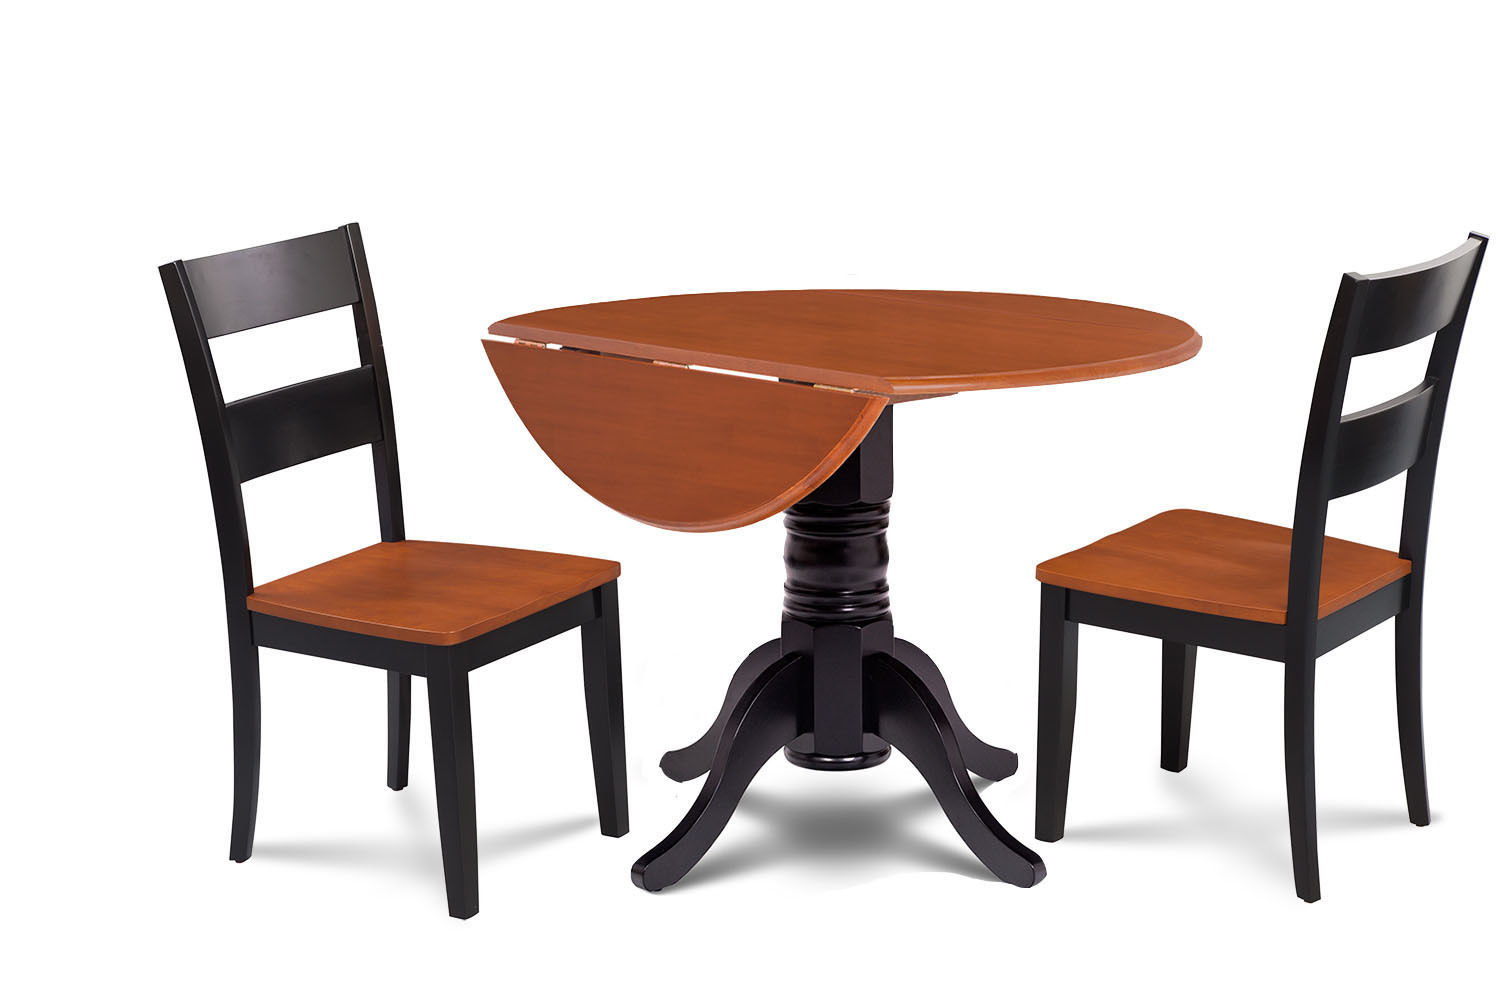 """42"""" BURLINGTON DINETTE DINING TABLE SET WOODEN SEAT CHAIRS IN BLACK CHERRY"""